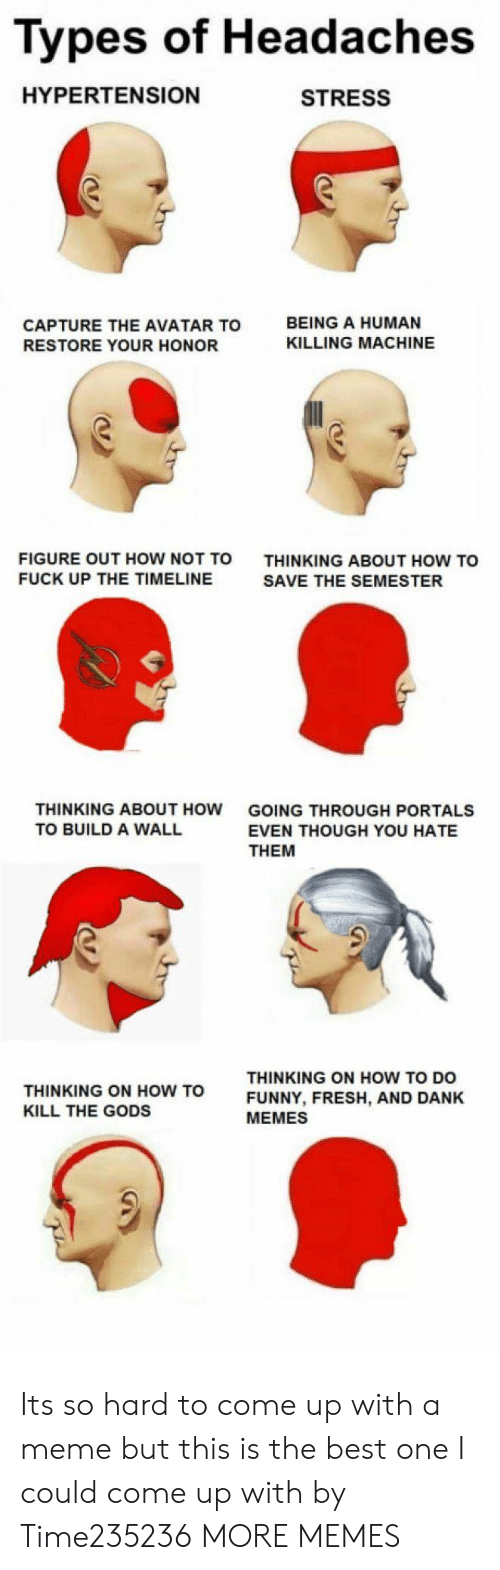 how to kill: Types of Headaches  HYPERTENSION  STRESS  CAPTURE THE AVATAR TO  RESTORE YOUR HONOR  BEING A HUMAN  KILLING MACHINE  FIGURE OUT HOW NOT TO  FUCK UP THE TIMELINE  THINKING ABOUT HOW TO  SAVE THE SEMESTER  THINKING ABOUT HOW  TO BUILD A WALL  GOING THROUGH PORTALS  EVEN THOUGH YOU HATE  THEM  THINKING ON HOW TO  KILL THE GODS  THINKING ON HOW TO DO  FUNNY, FRESH, AND DANK  MEMES Its so hard to come up with a meme but this is the best one I could come up with by Time235236 MORE MEMES